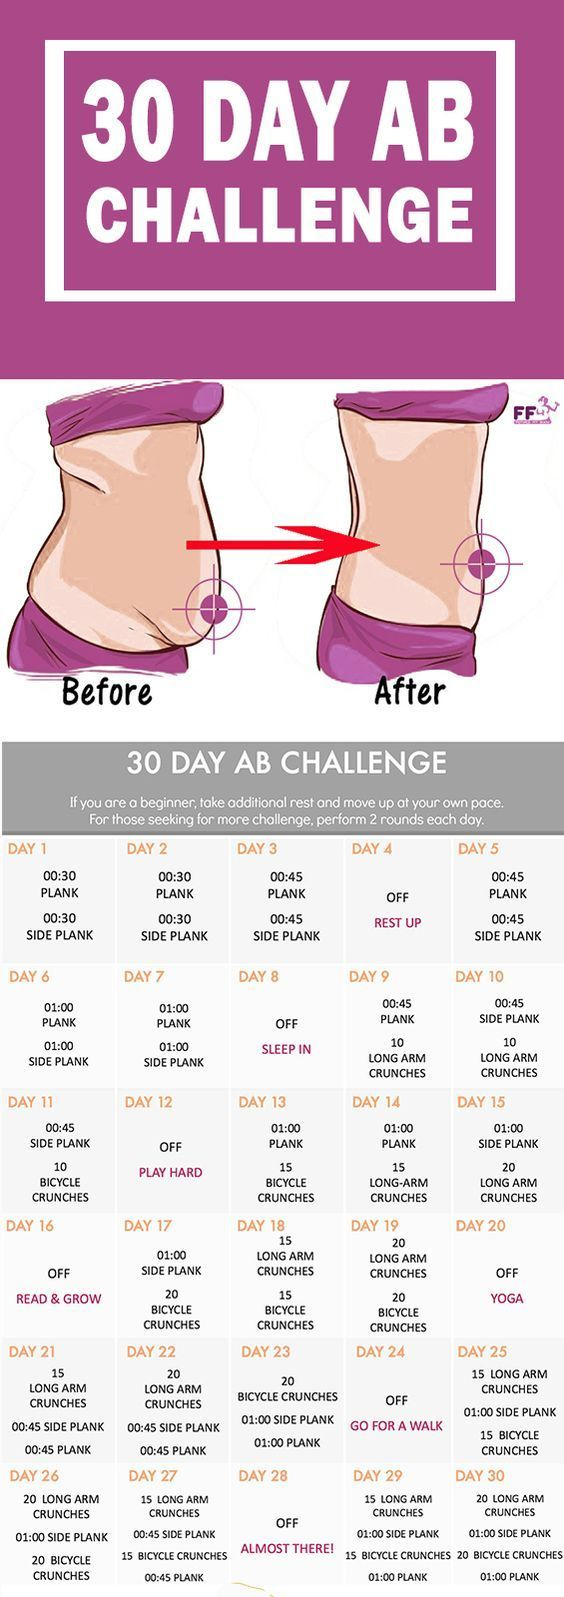 25+ best ideas about 30 Challenge on Pinterest | 30 day ...